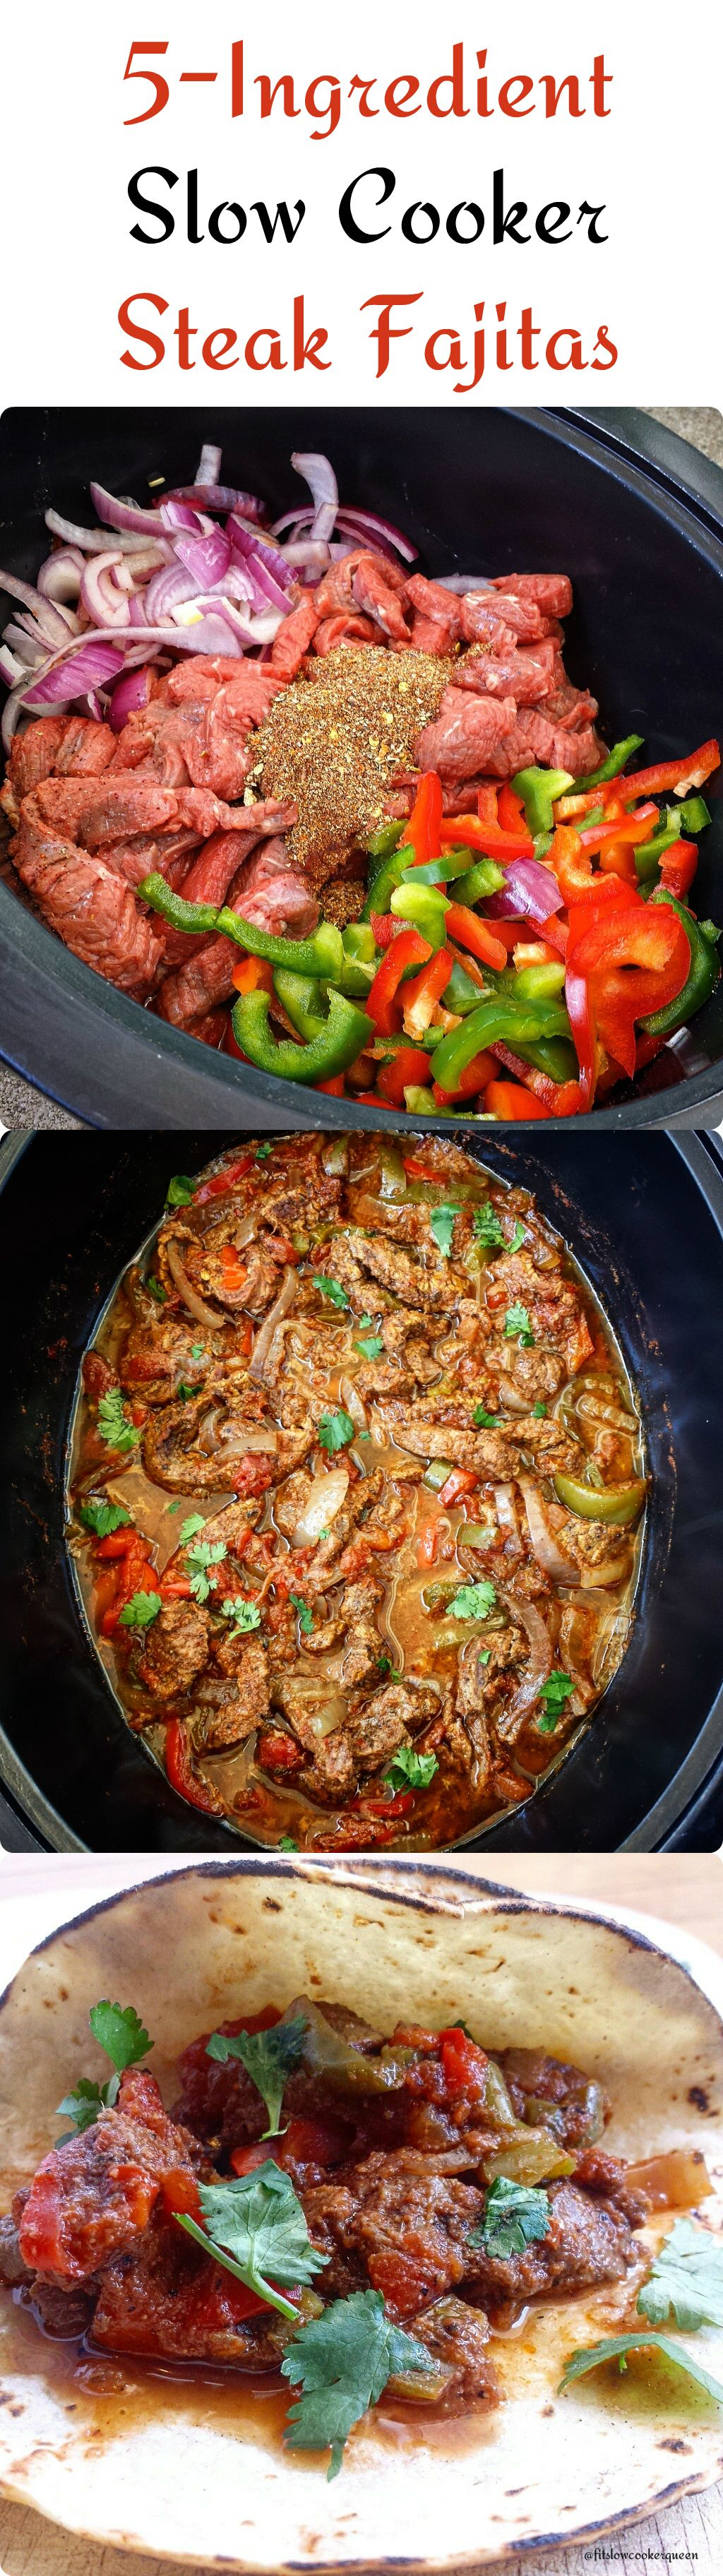 5-Ingredient Slow Cooker/Instant Pot Steak Fajitas (Low-Carb, Paleo, Whole30) #steakfajitarecipe